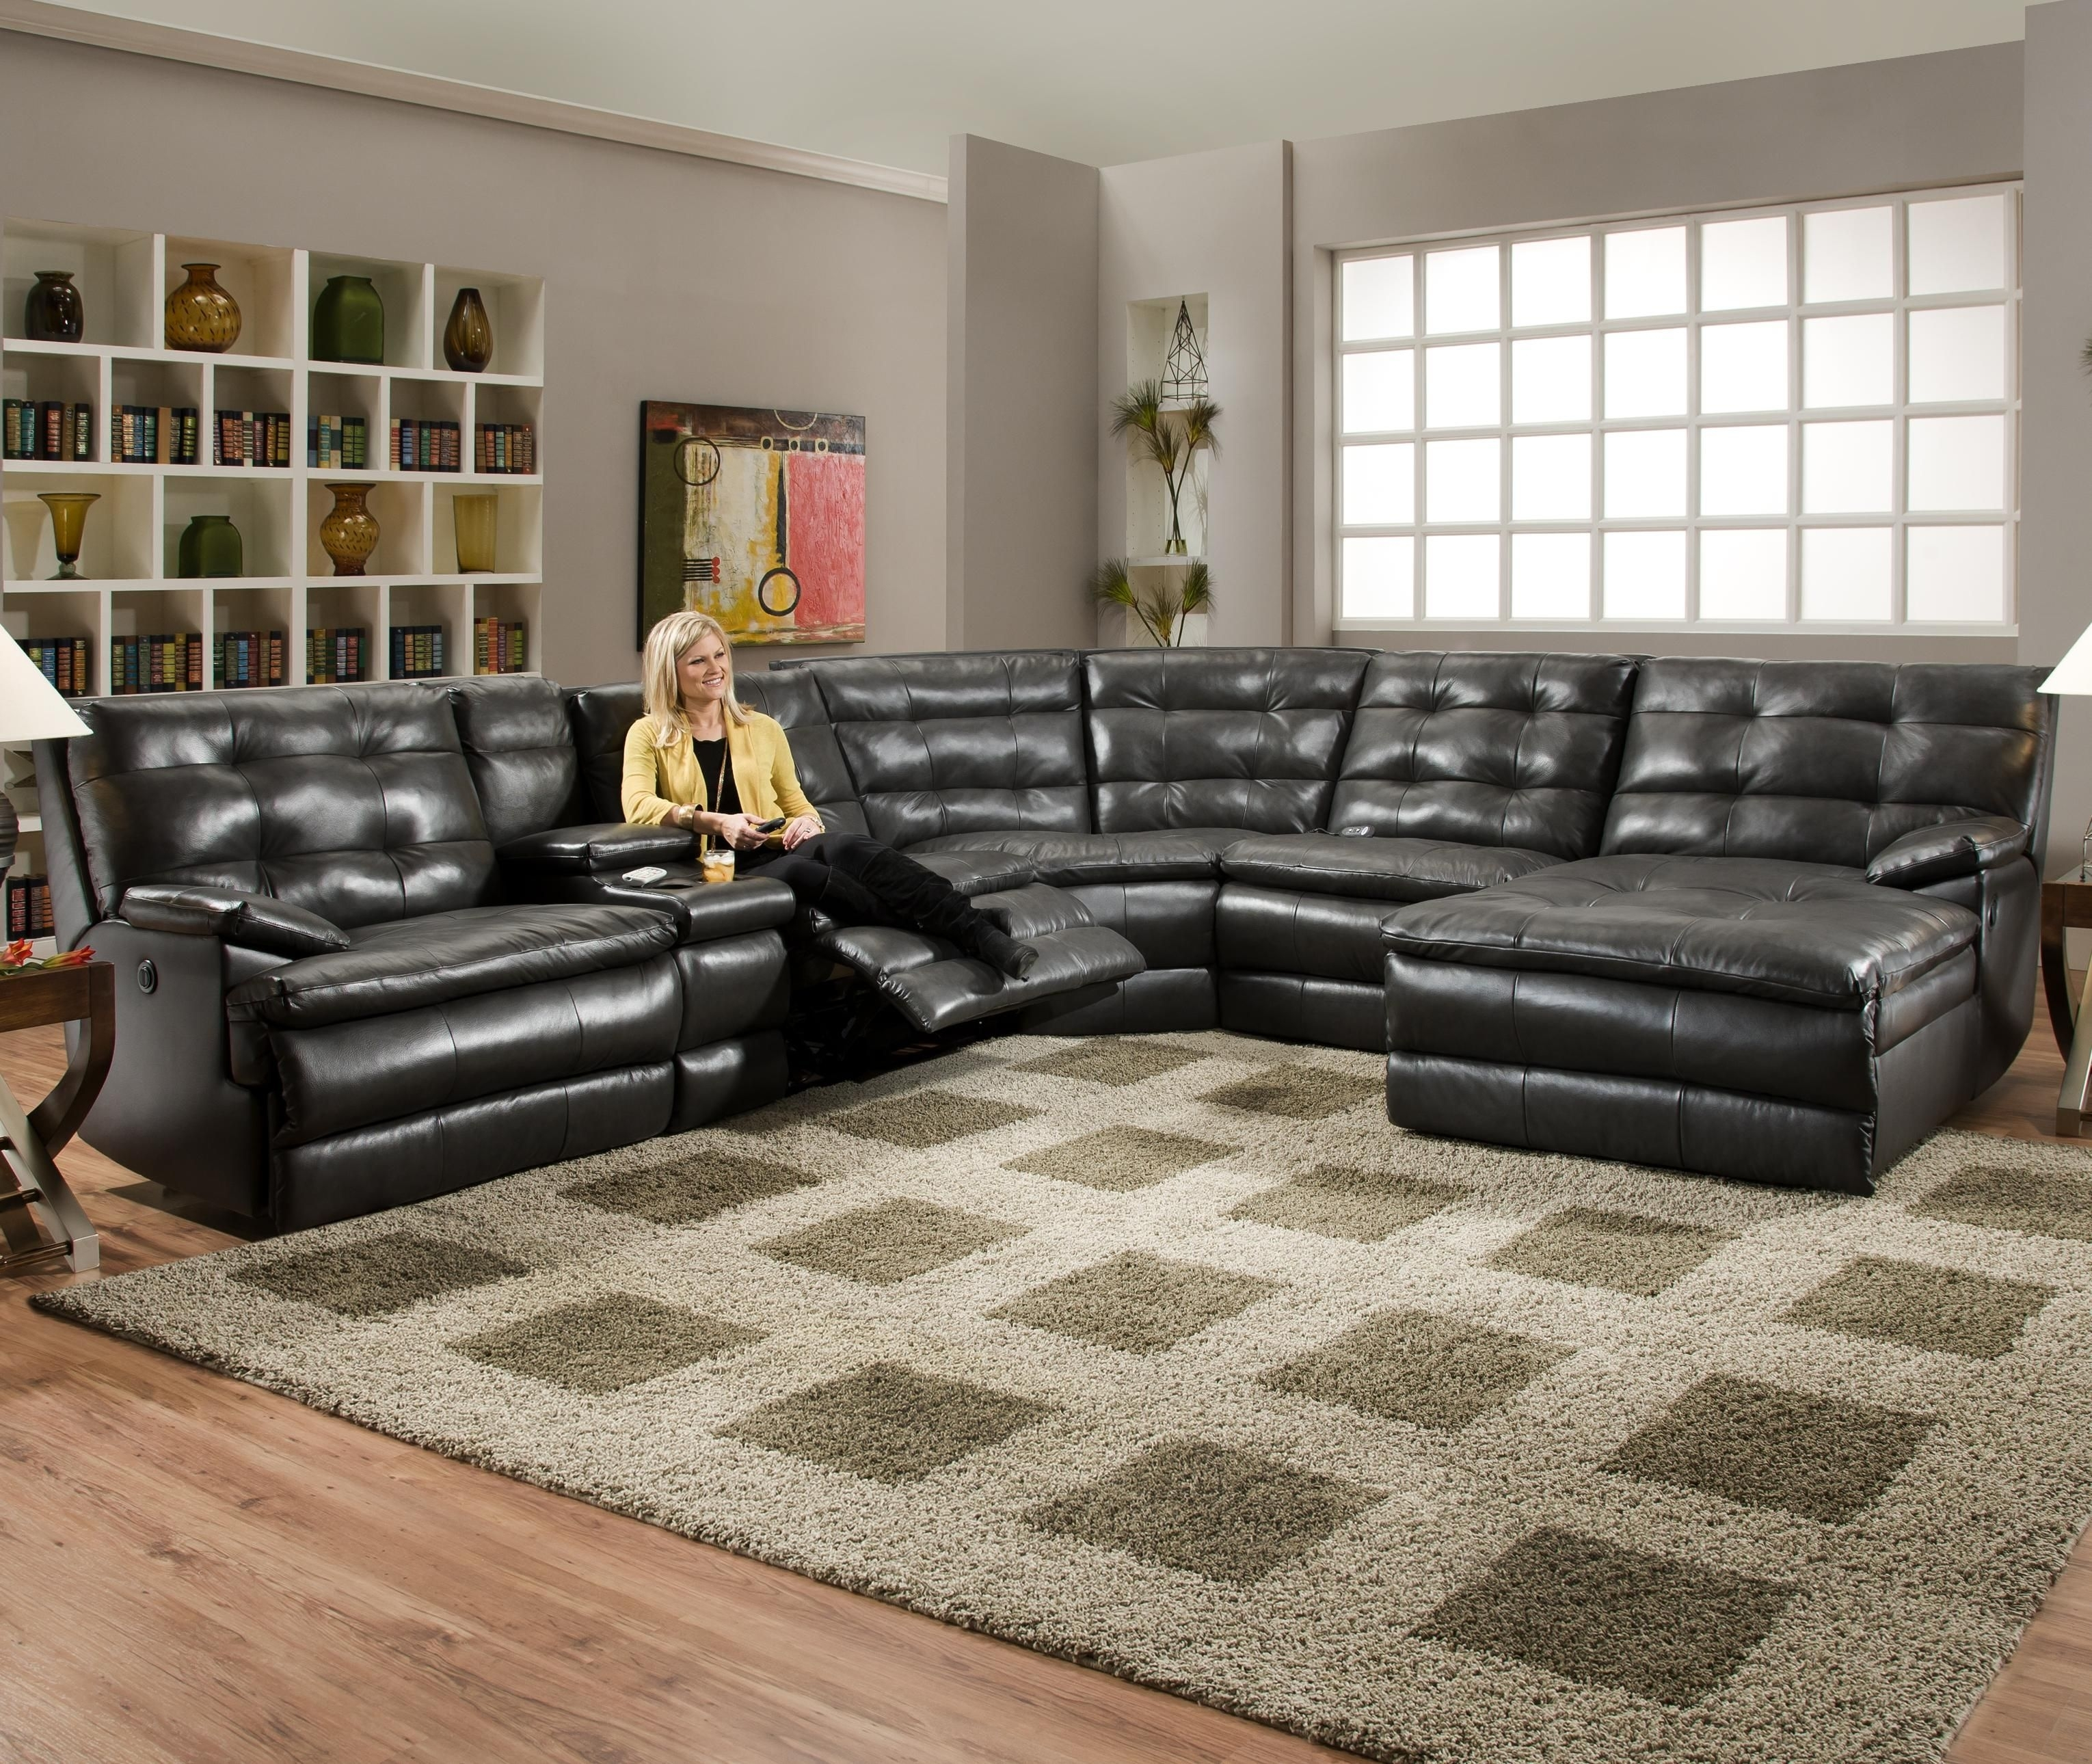 Luxurious Tufted Leather Sectional Sofa In Classy Black Color With For Marcus Chocolate 6 Piece Sectionals With Power Headrest And Usb (Image 10 of 25)